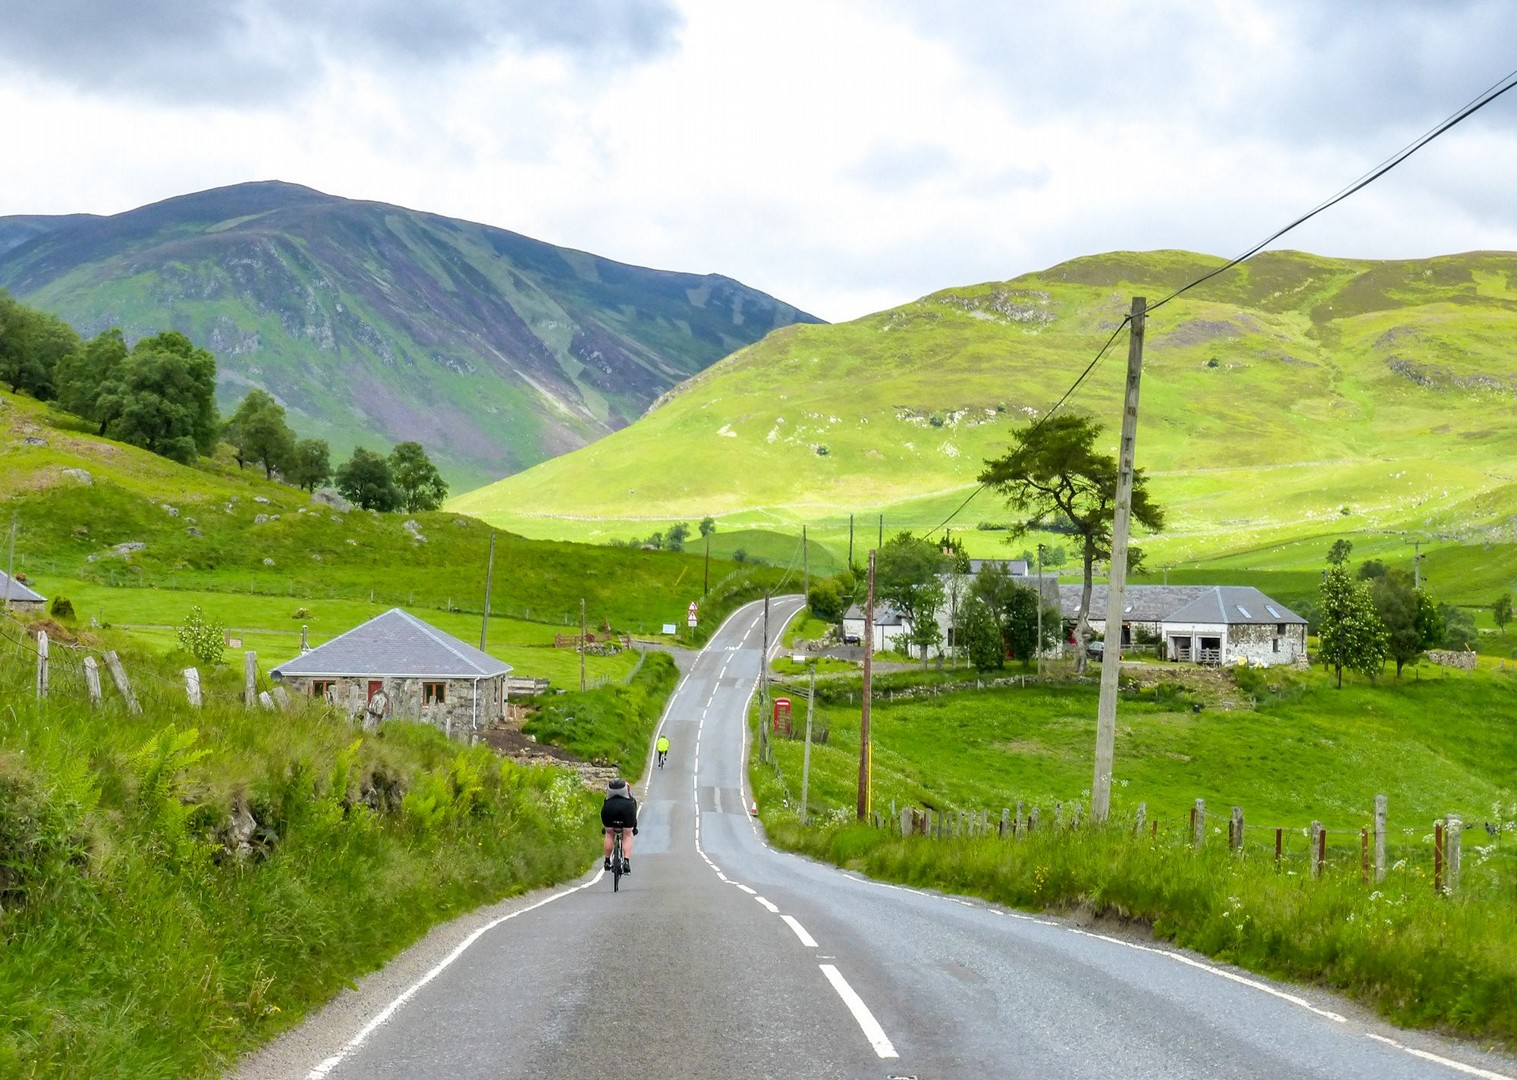 lands-end-to-john-ogroats-22-day-guided-cycling-holiday.jpg - UK - Land's End to John O'Groats Explorer (22 days) - Guided Cycling Holiday - Road Cycling